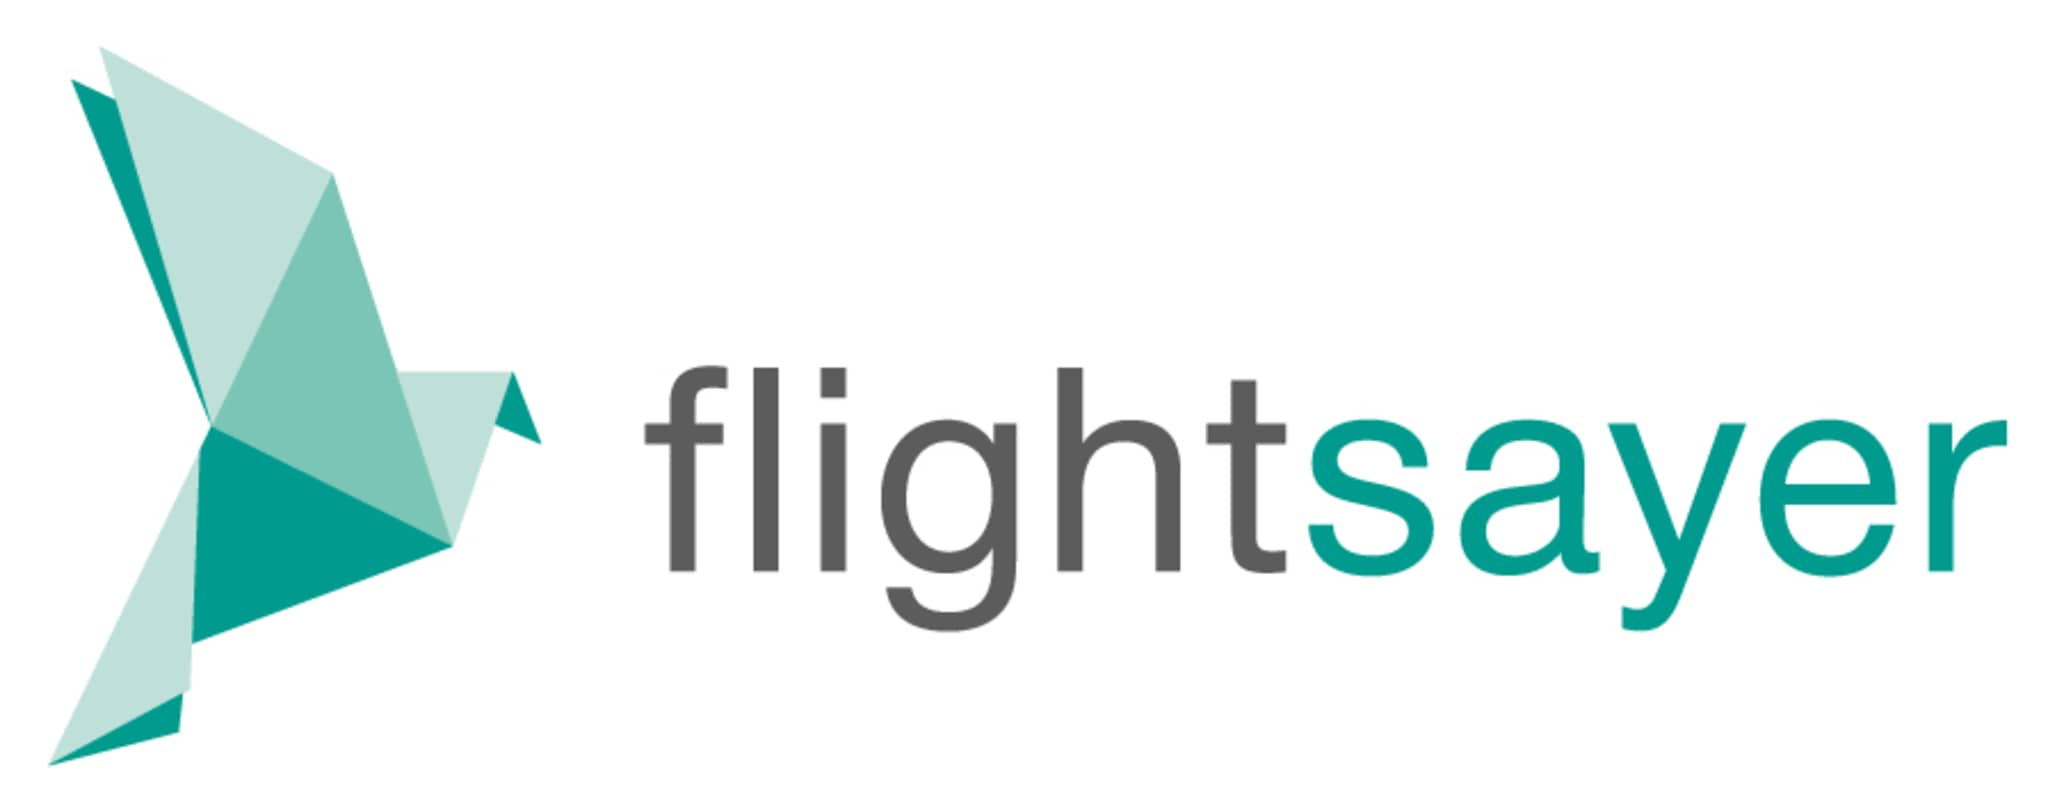 App of the Week #2: Flightsayer